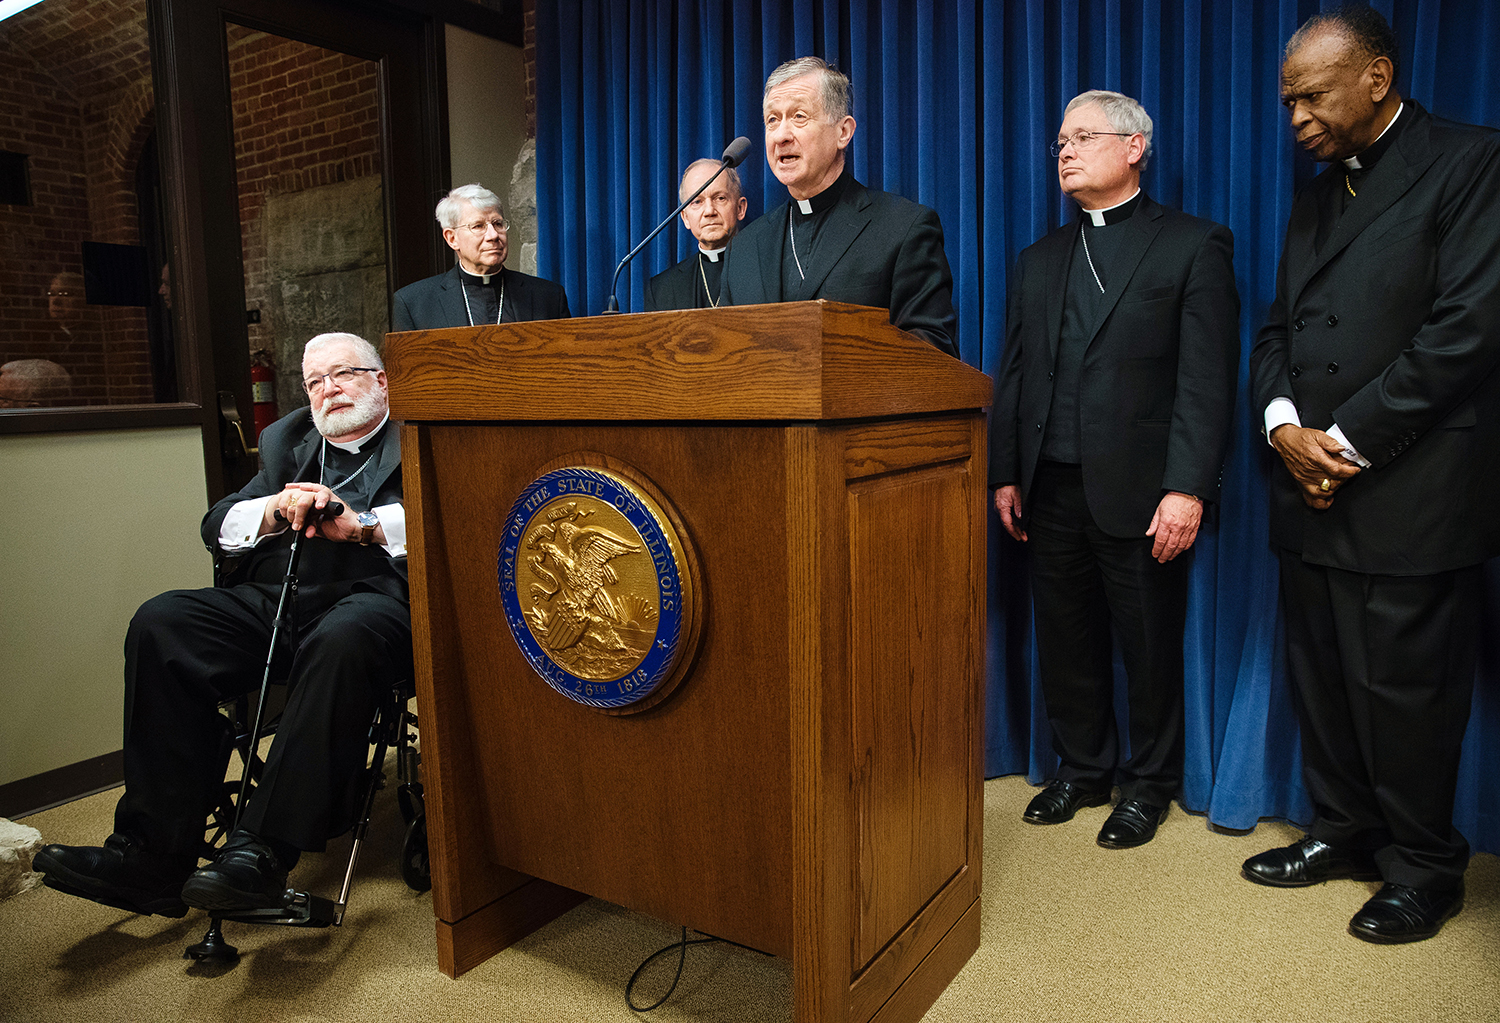 Cardinal Blase Cupich, center, Archbishop of Chicago, is joined by the bishops from Illinois' five Catholic dioceses to address legislation that would dramatically alter abortion law and repeal the state's Parental Notice of Abortion Act during a press conference at the Capitol Thursday, March 28, 2019 in Springfield, Ill. From left are Bishop Daniel Jenky of Peoria; Bishop Daniel Conlon of Joliet, Bishop Thomas John Paprocki of Springfield, Bishop David Malloy of Rockford and Bishop Edward Braxton of Belleville. [Ted Schurter/The State Journal-Register]